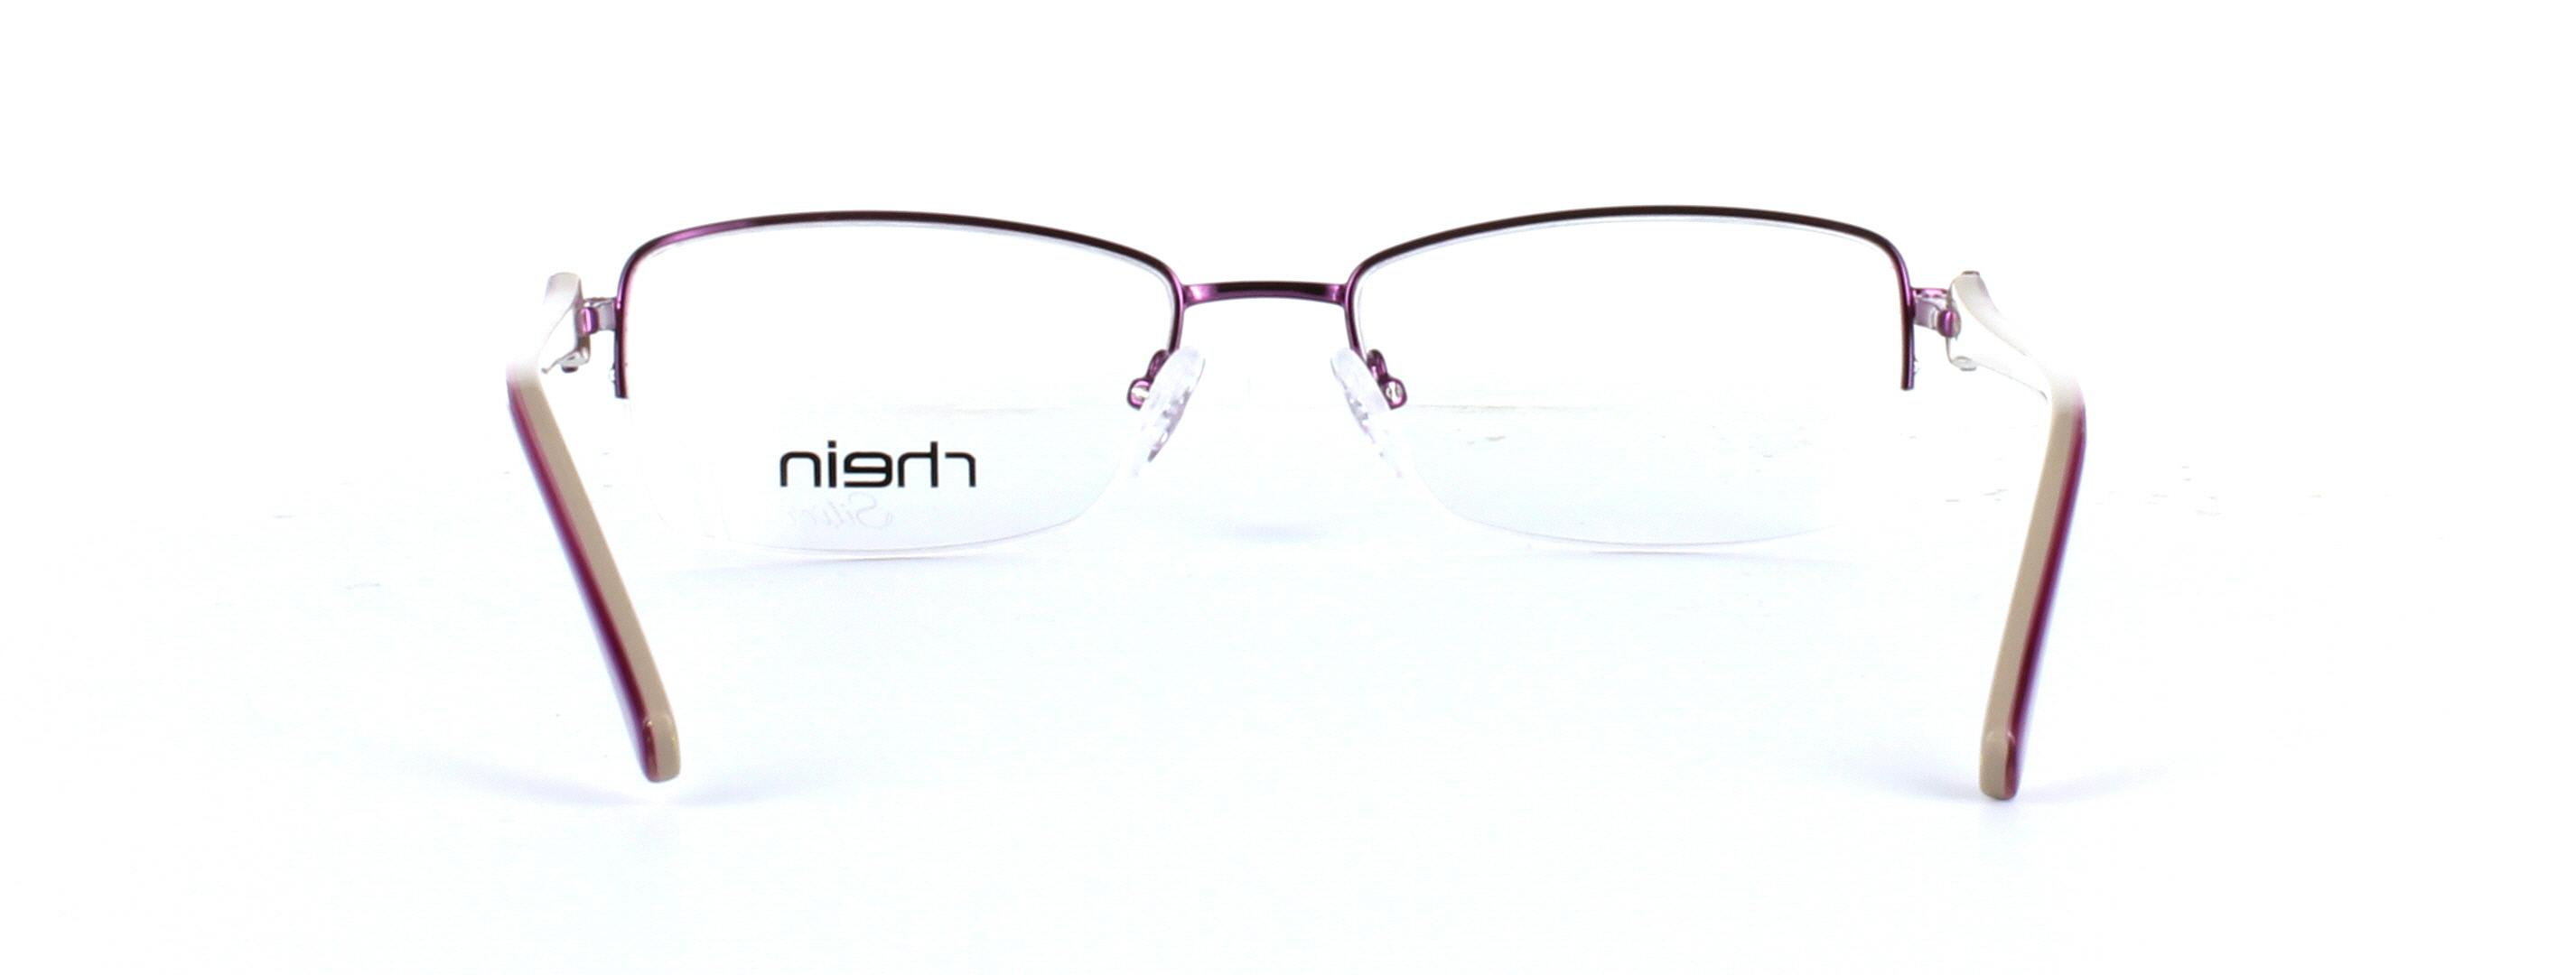 Ladies semi-rim glasses - Sloane - image 3